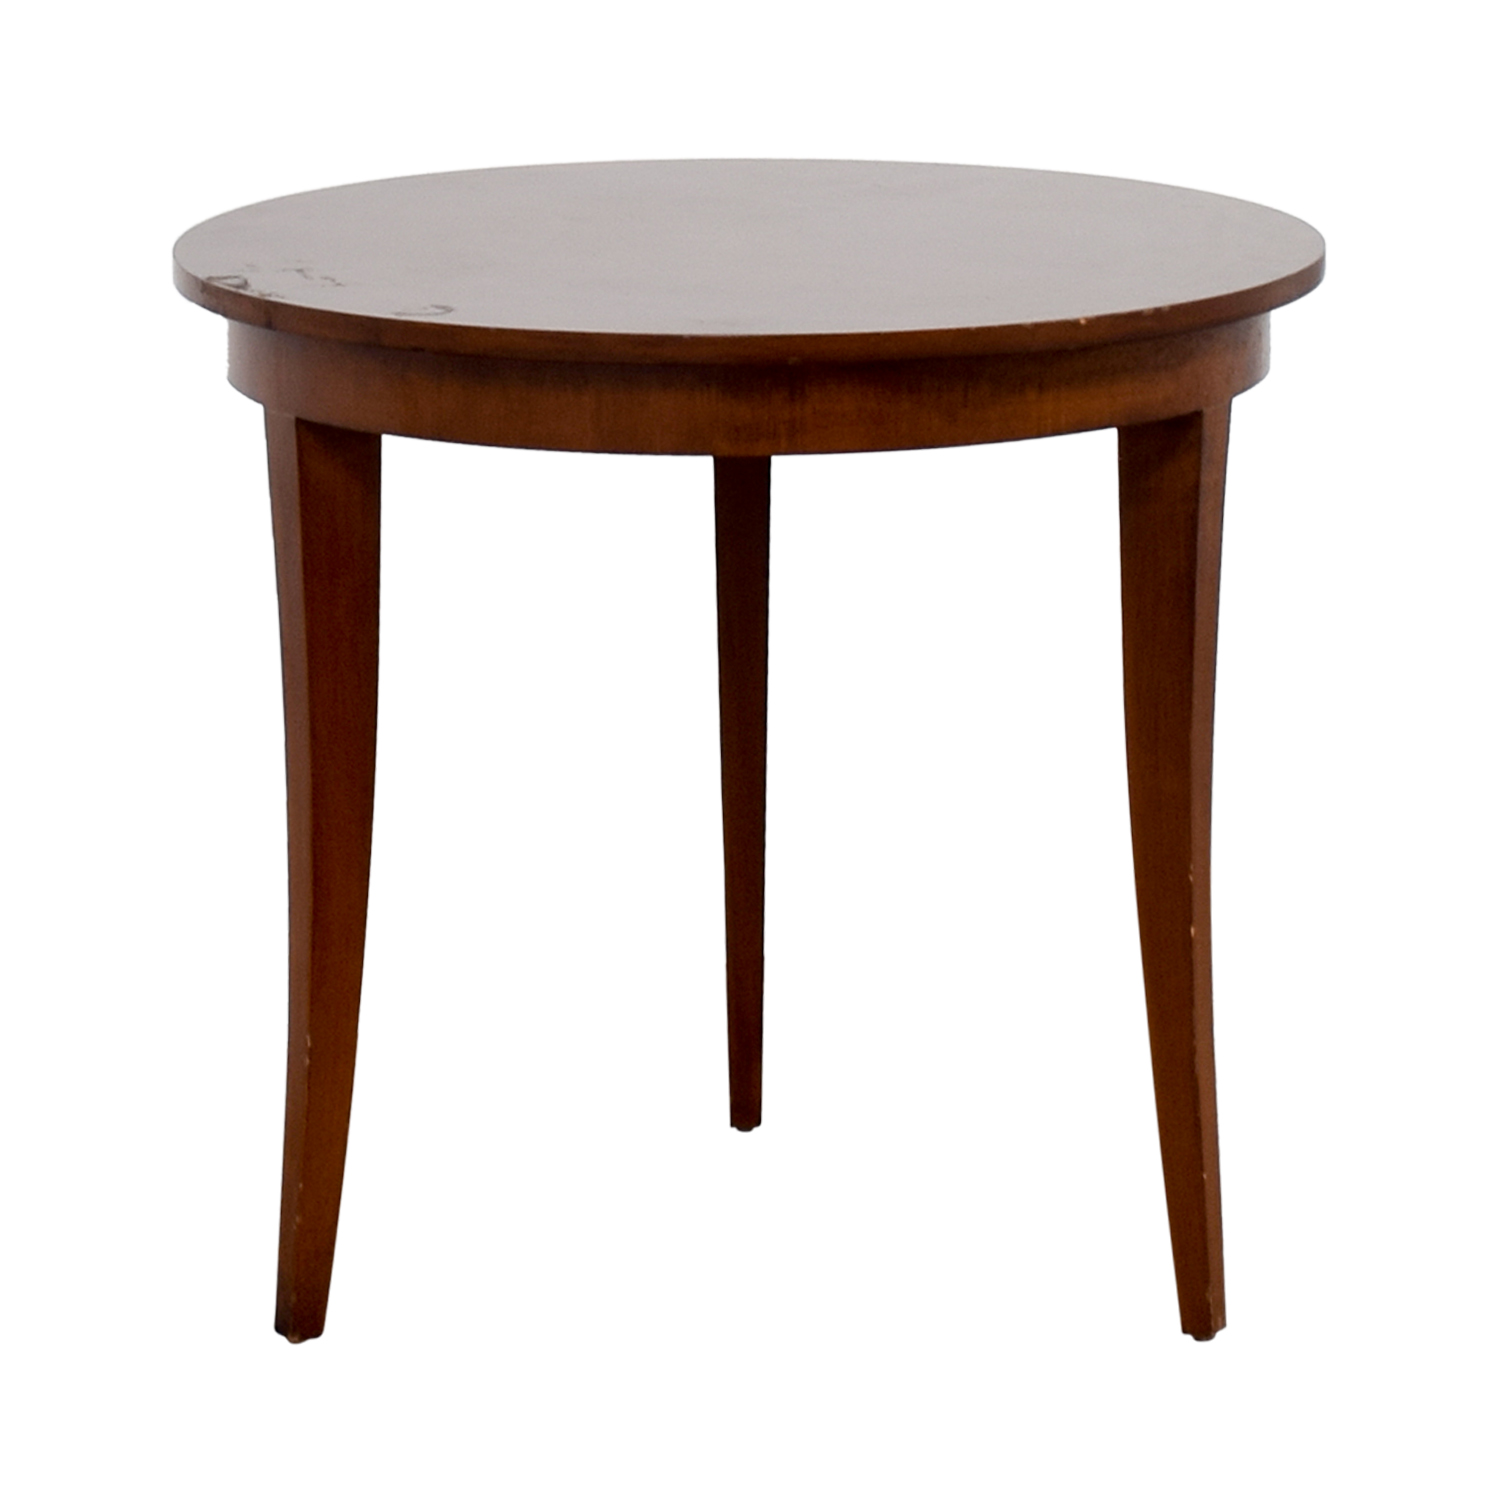 Furniture Masters Furniture Masters Round Wood End Table Tables. 53  OFF   Furniture Masters Furniture Masters Round Wood End Table